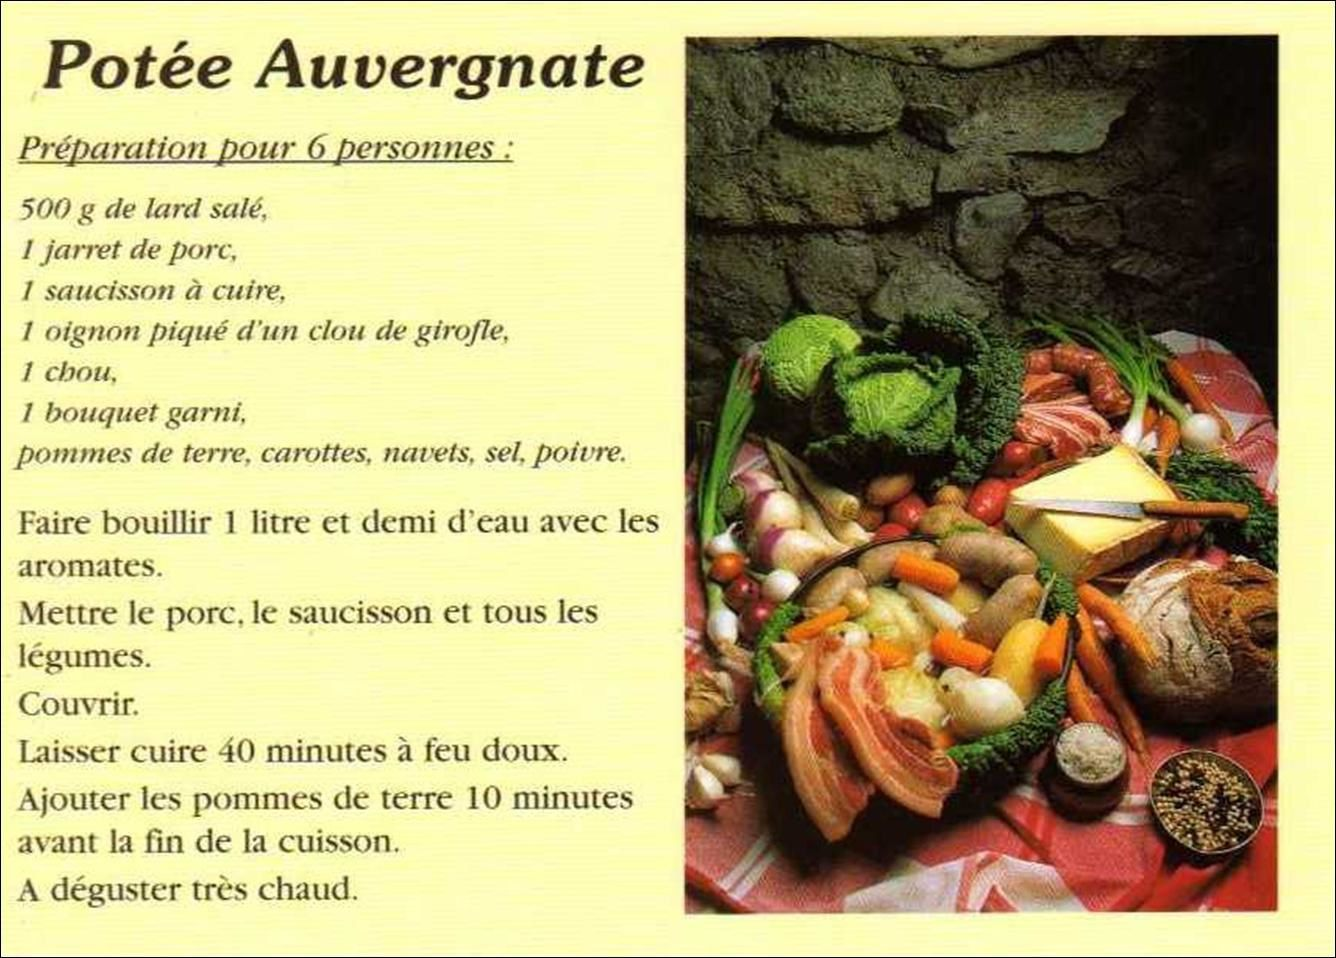 Recette potee auvergnate traditionnelle 28 images pot for Auvergne cuisine traditionnelle